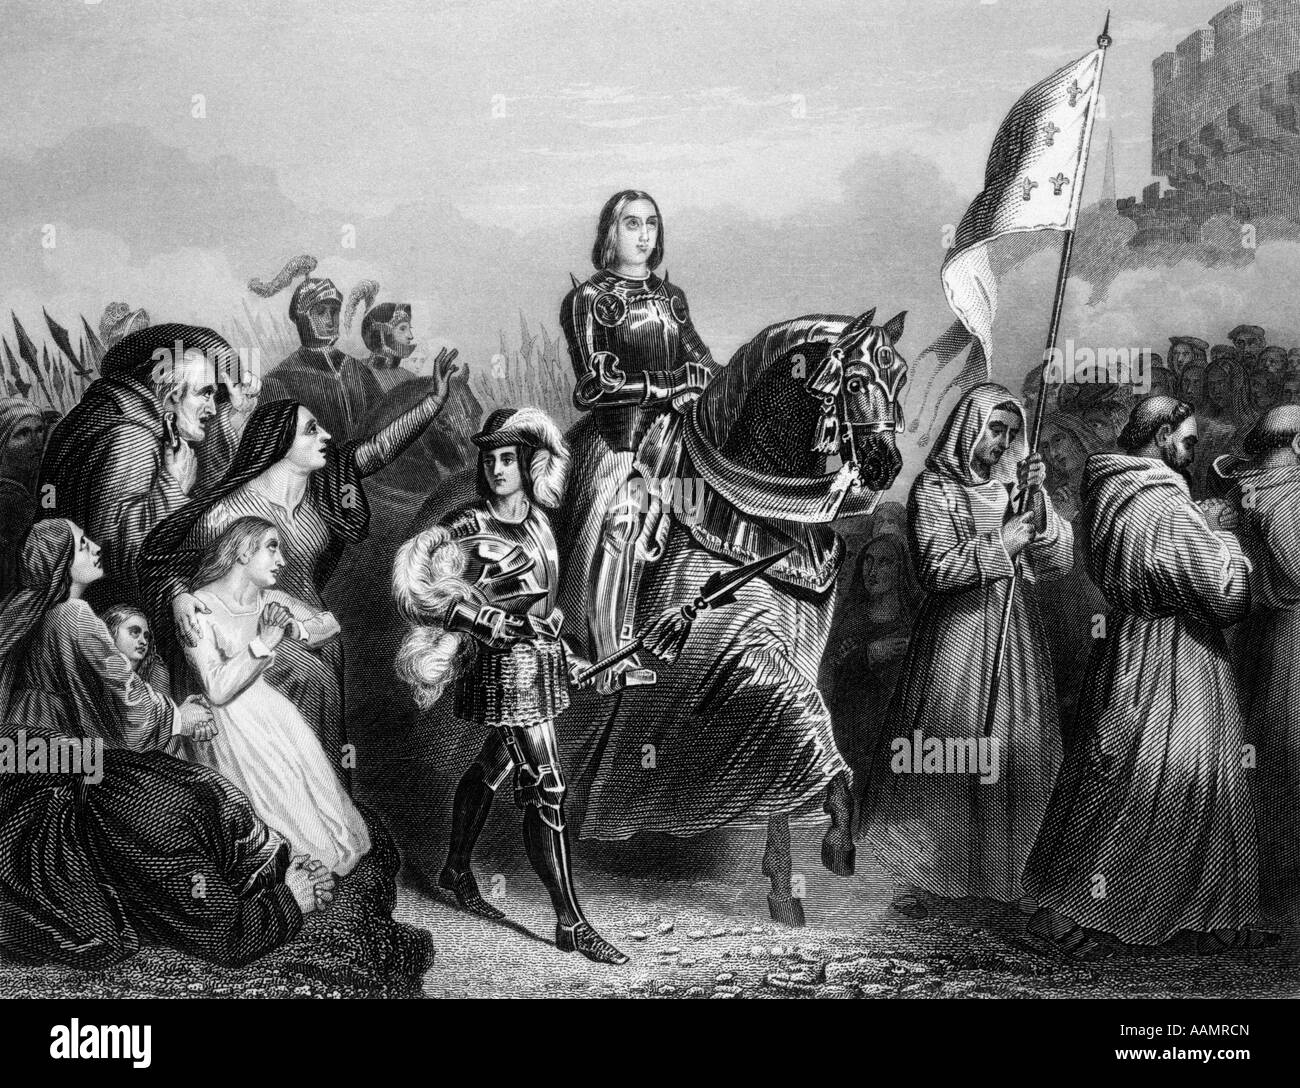 ENTRY OF JOAN OF ARC INTO ORLEANS 1429 FRENCH SAINT WOMAN MILITARY LEADER HEROINE CATHOLIC MAID OF ORLEANS JEANNE Stock Photo